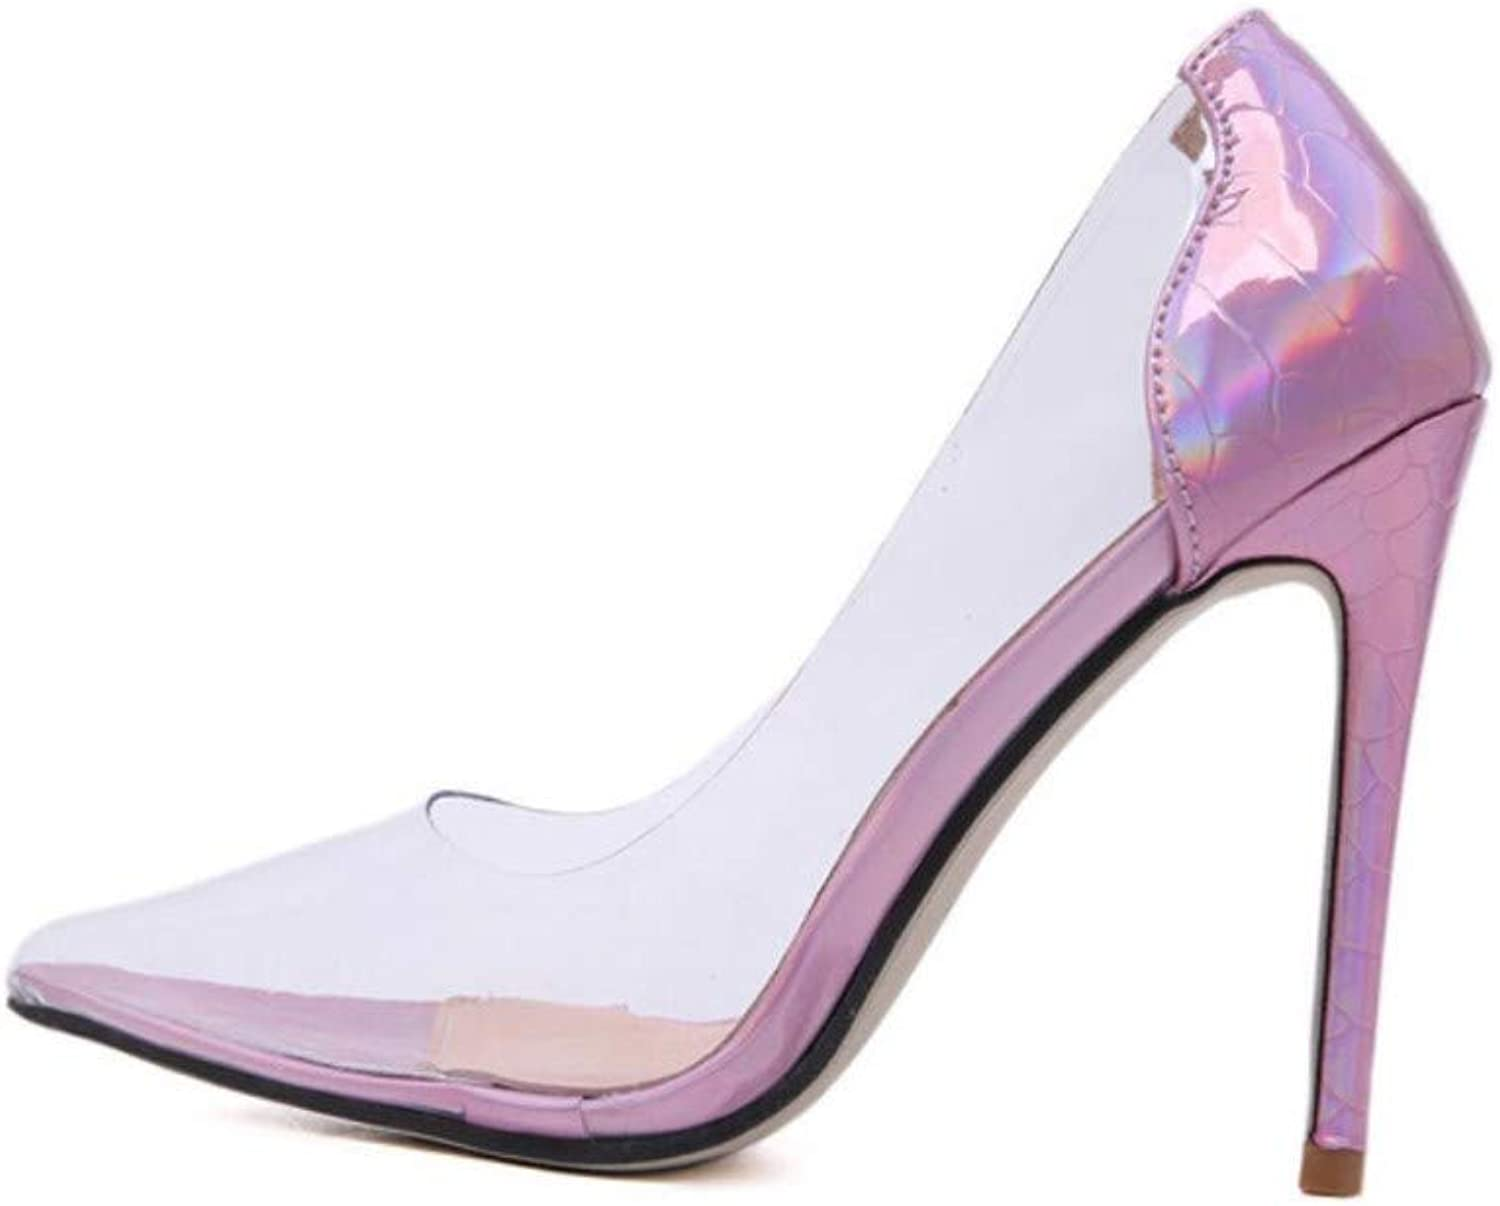 JQfashion Transparent Gradual Colour Change of Tip Tip Sexy Sandals for Women's High-Heeled shoes